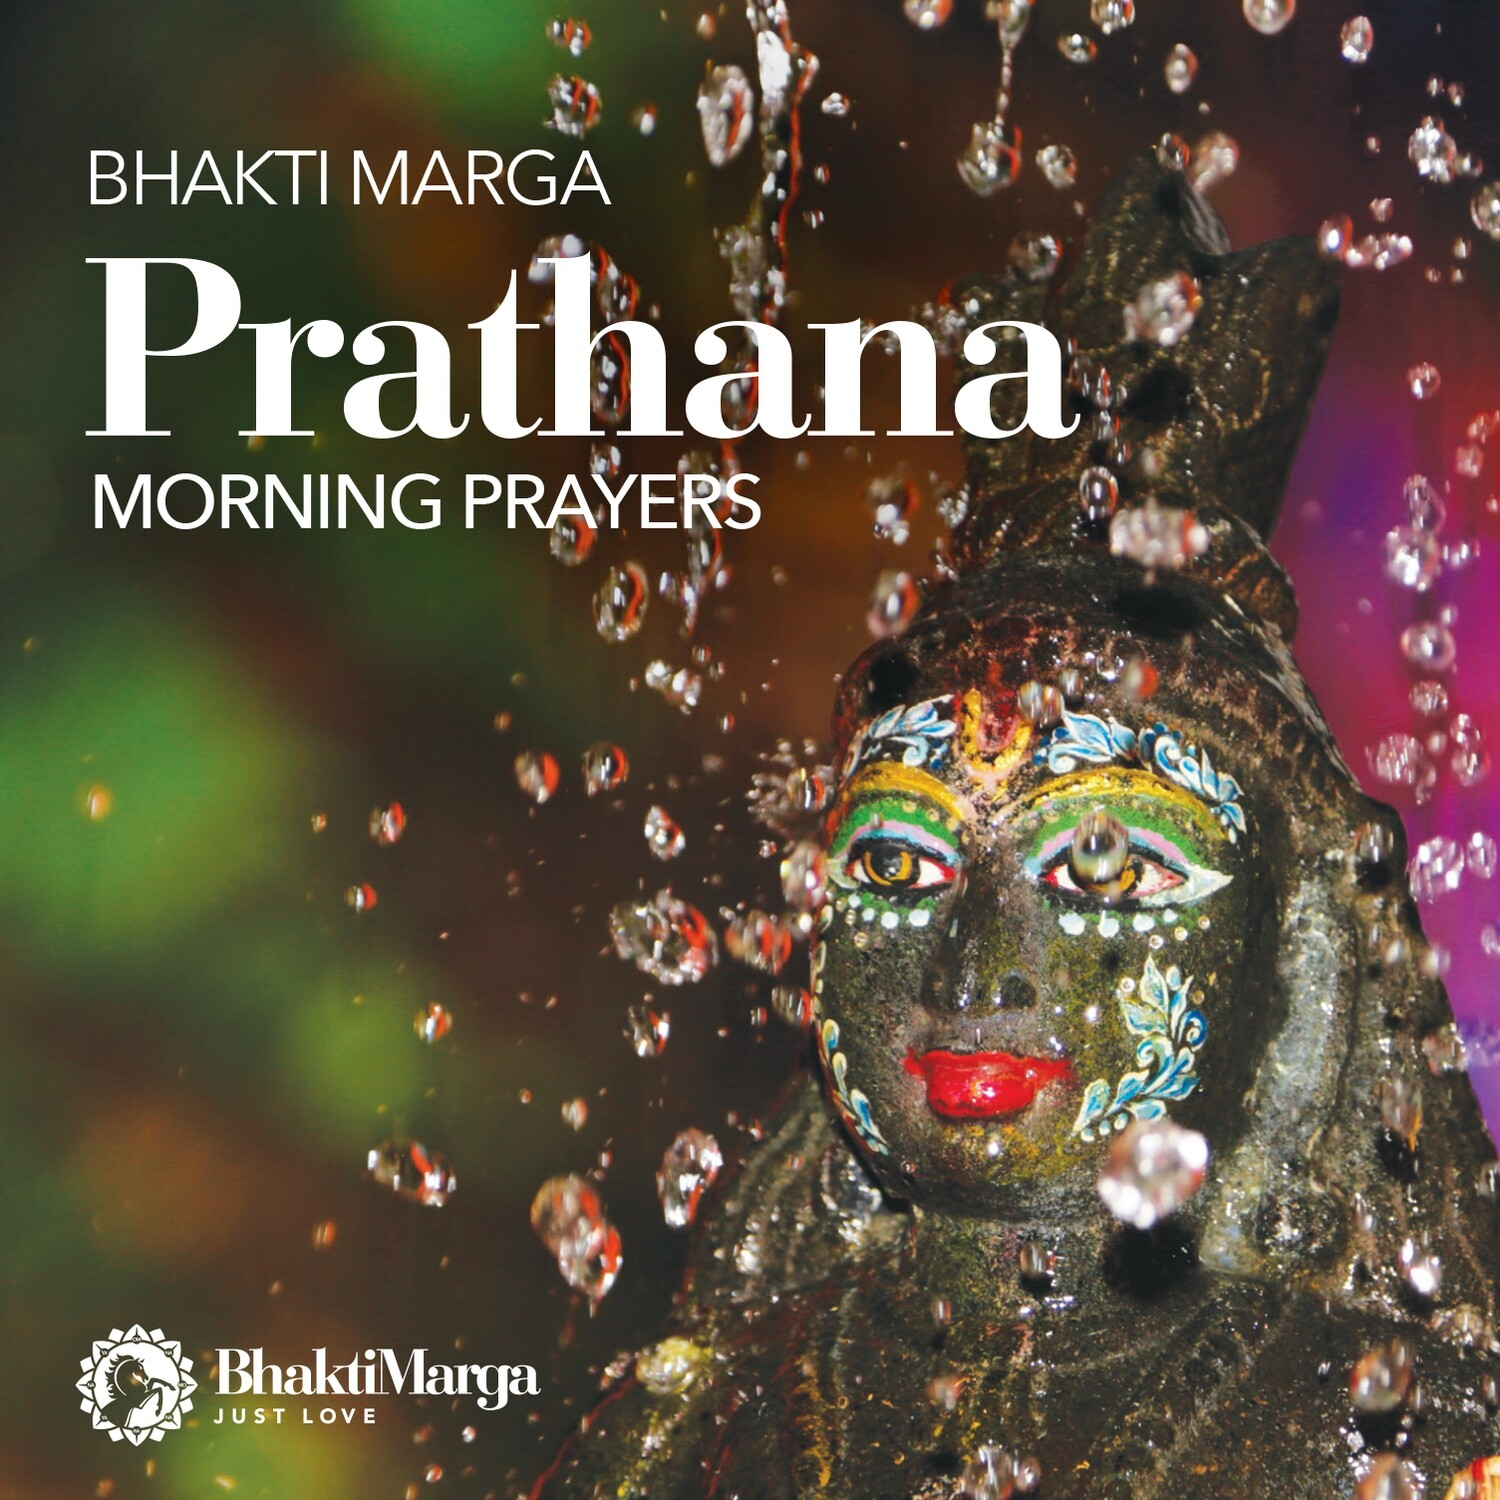 Prathana Morning Prayers By Bhakti Marga